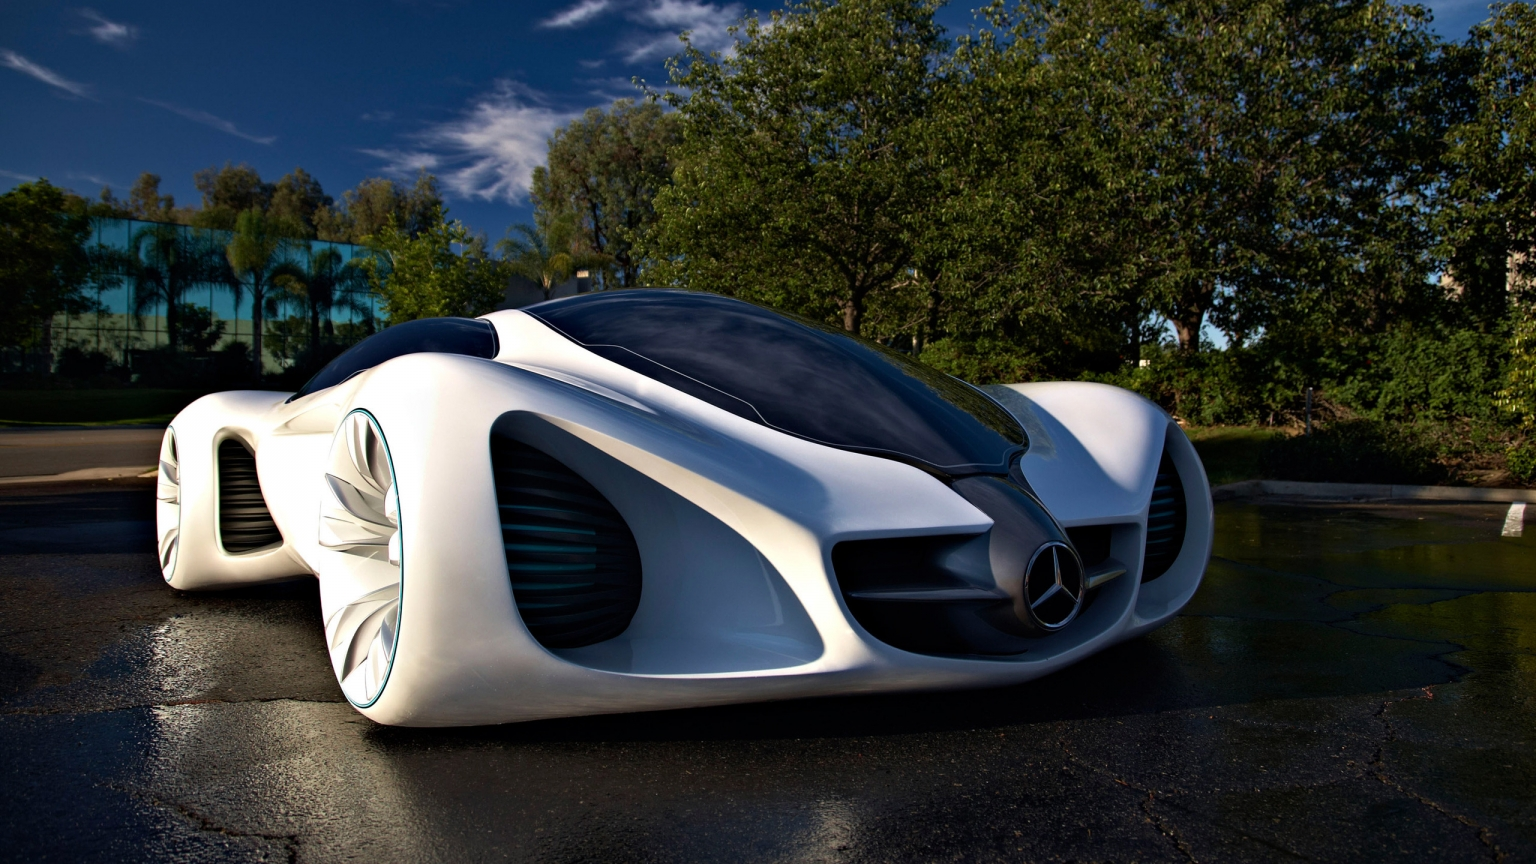 Mercedes Benz Biome for 1536 x 864 HDTV resolution